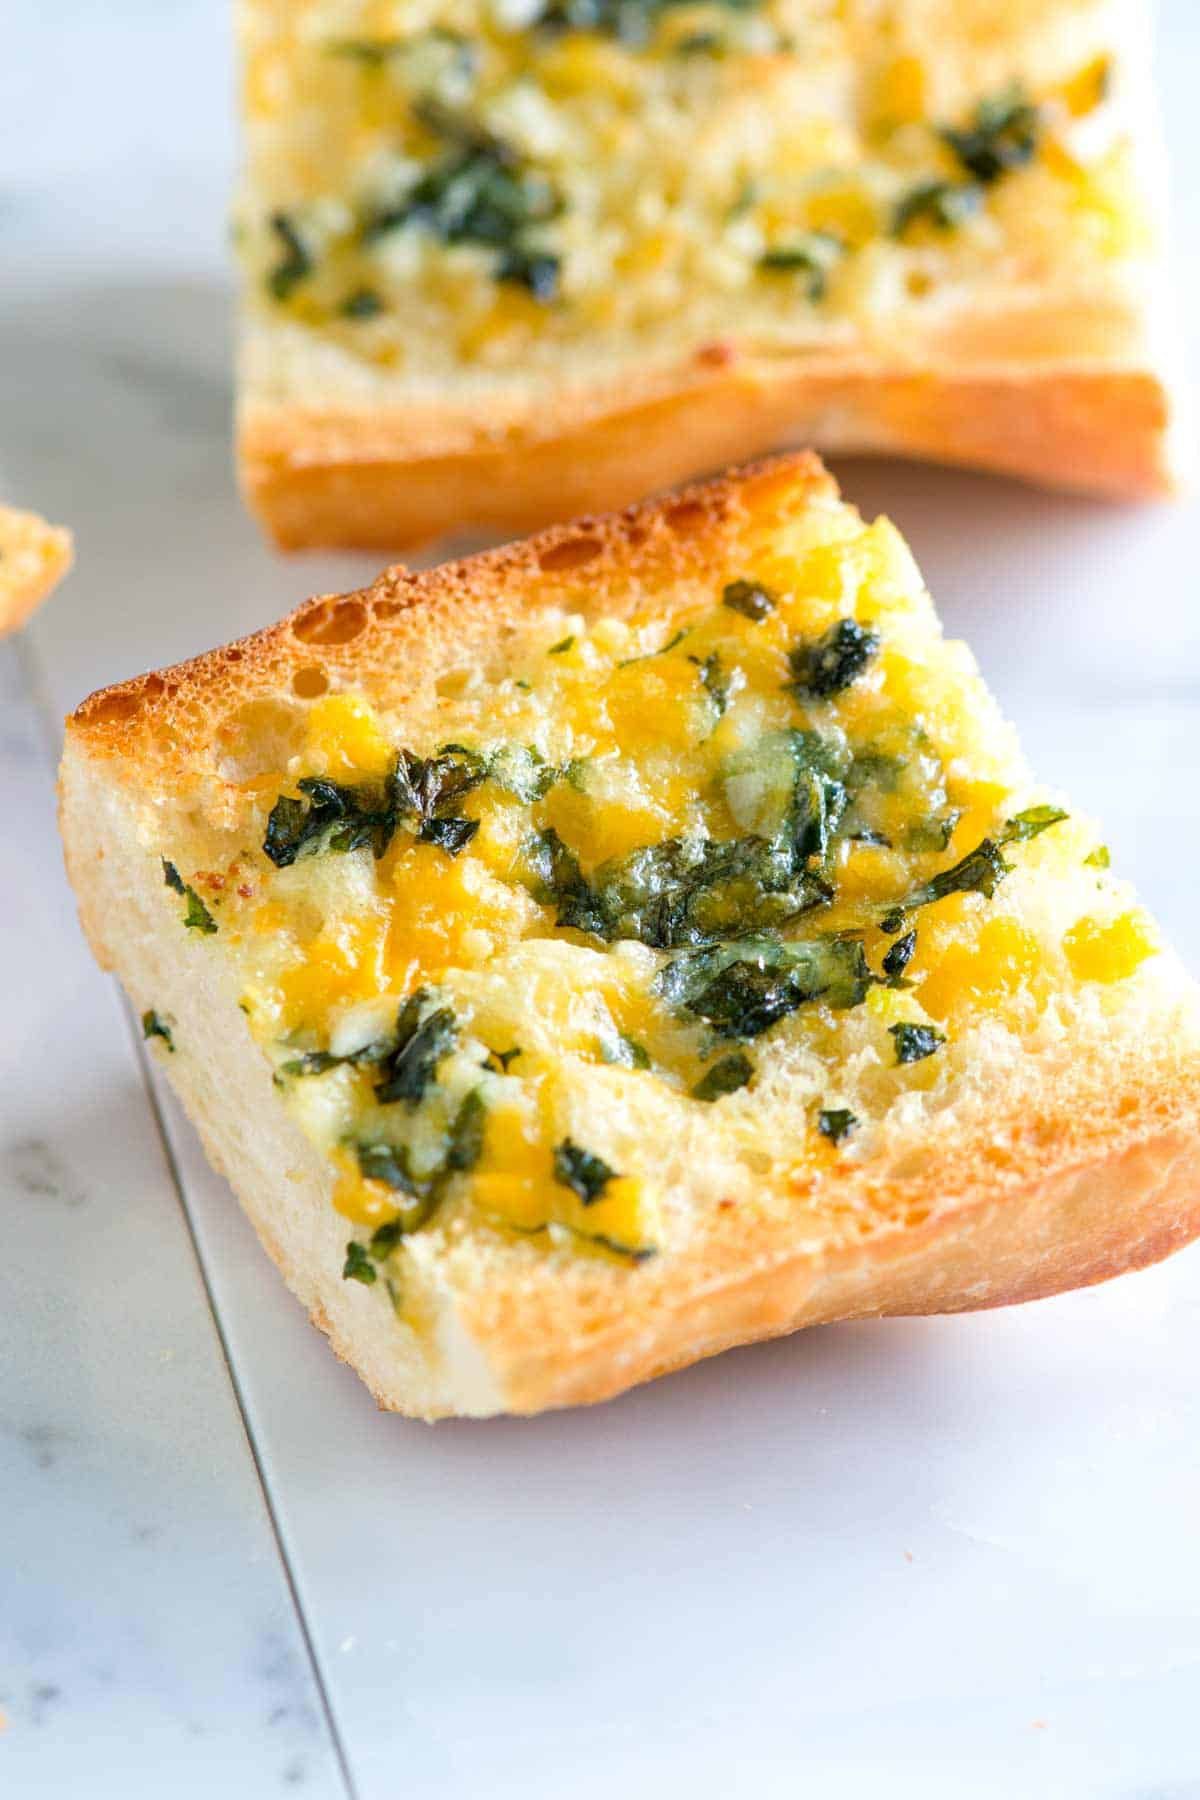 How to Make Cheesy Garlic Bread from Scratch